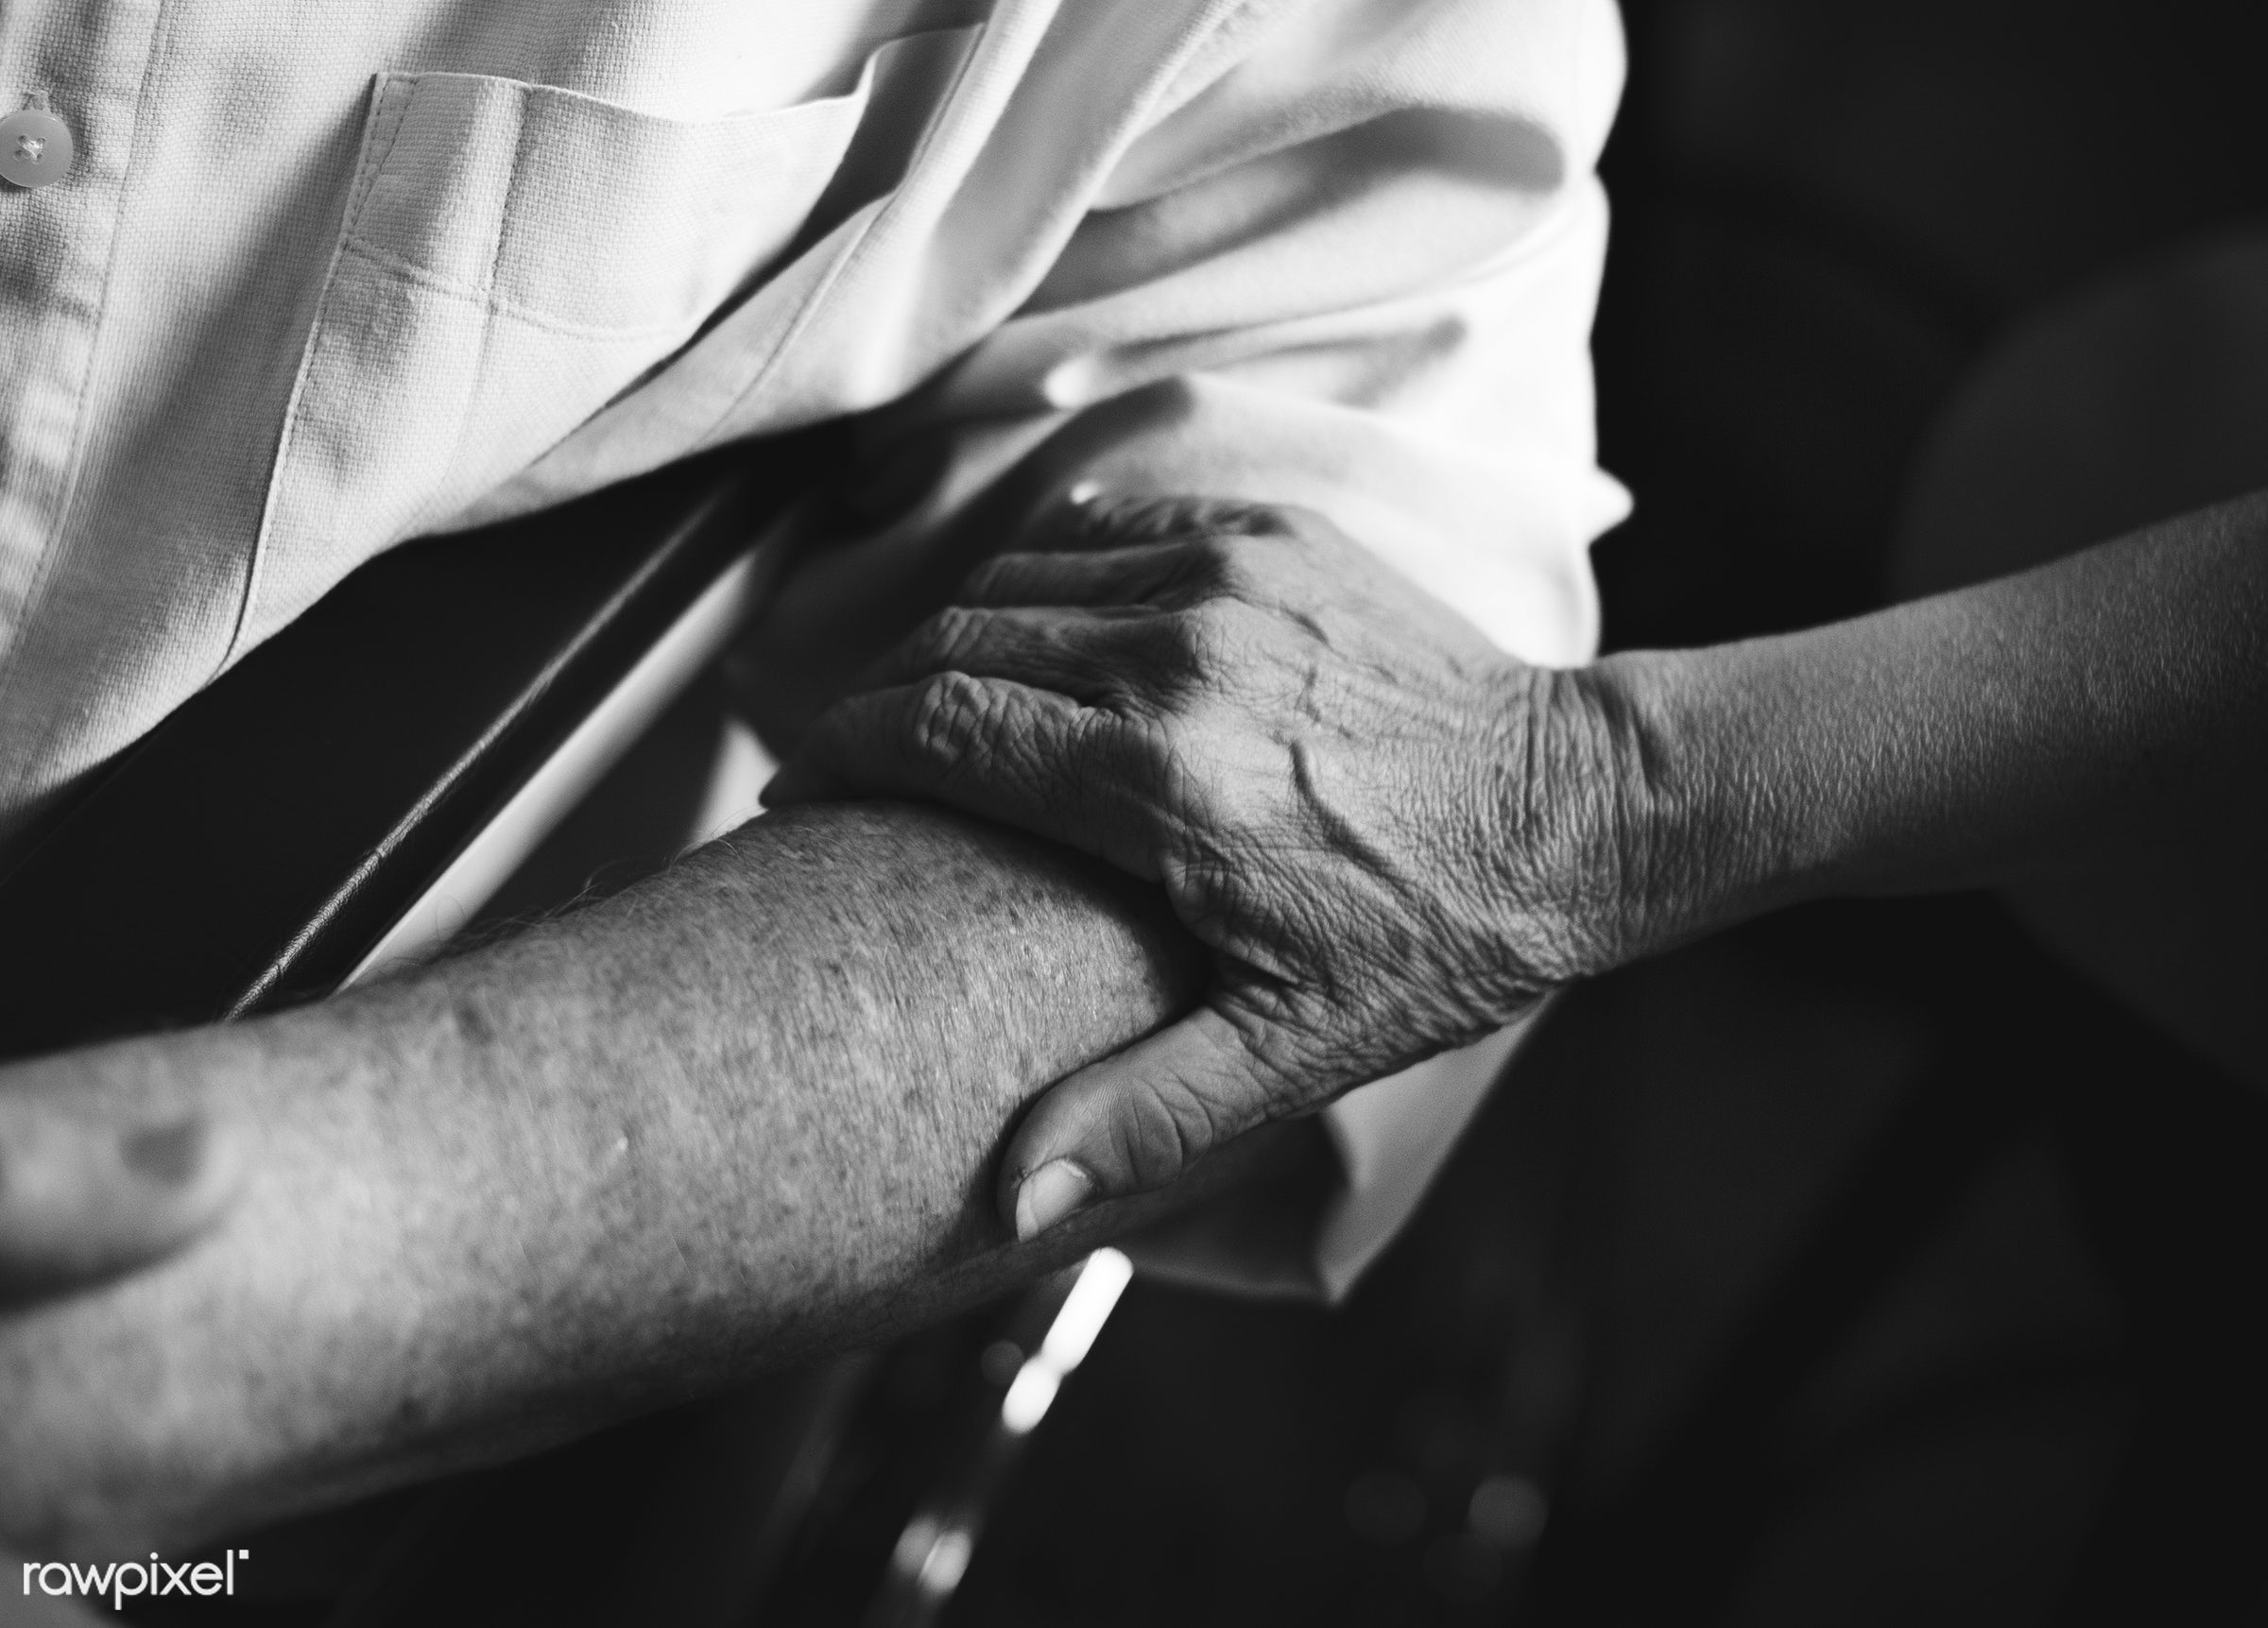 old, people, together, hands, wheelchair, spouse, disability, disable, closeup, handicapped, support, handicap, cares, sit,...